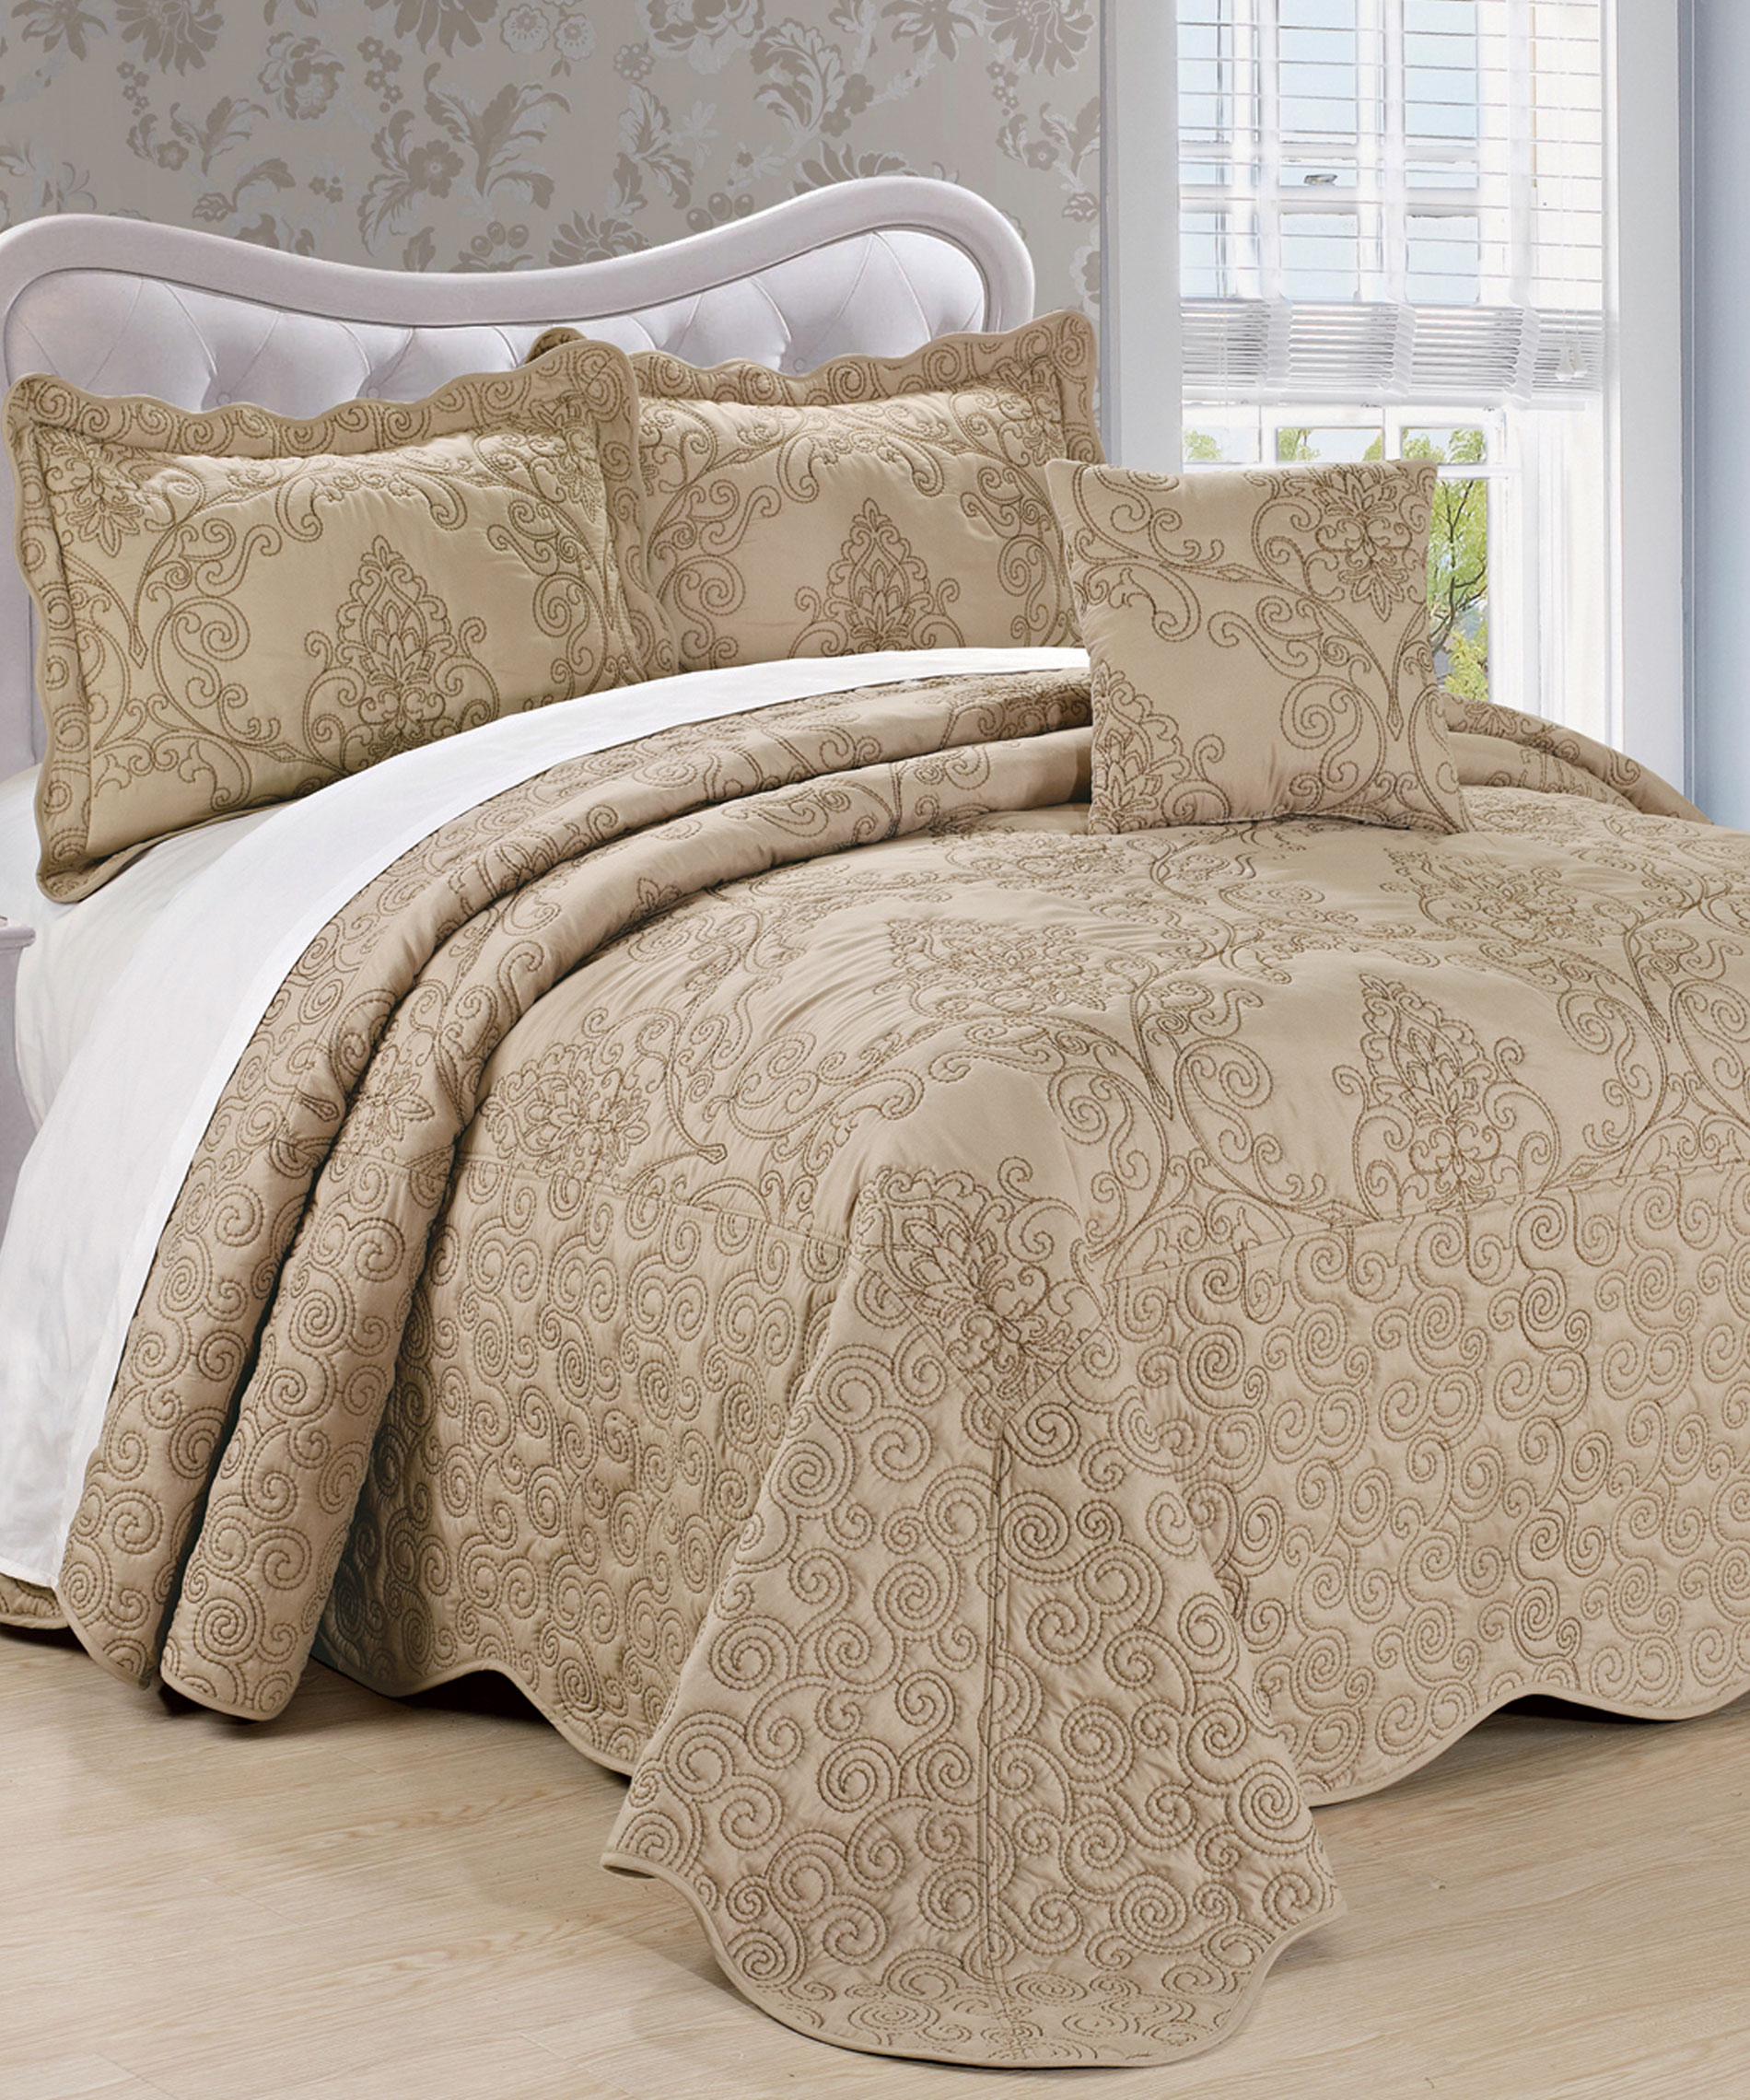 Damask Embroidered Quilted Bedspread Set Bnf Home Inc